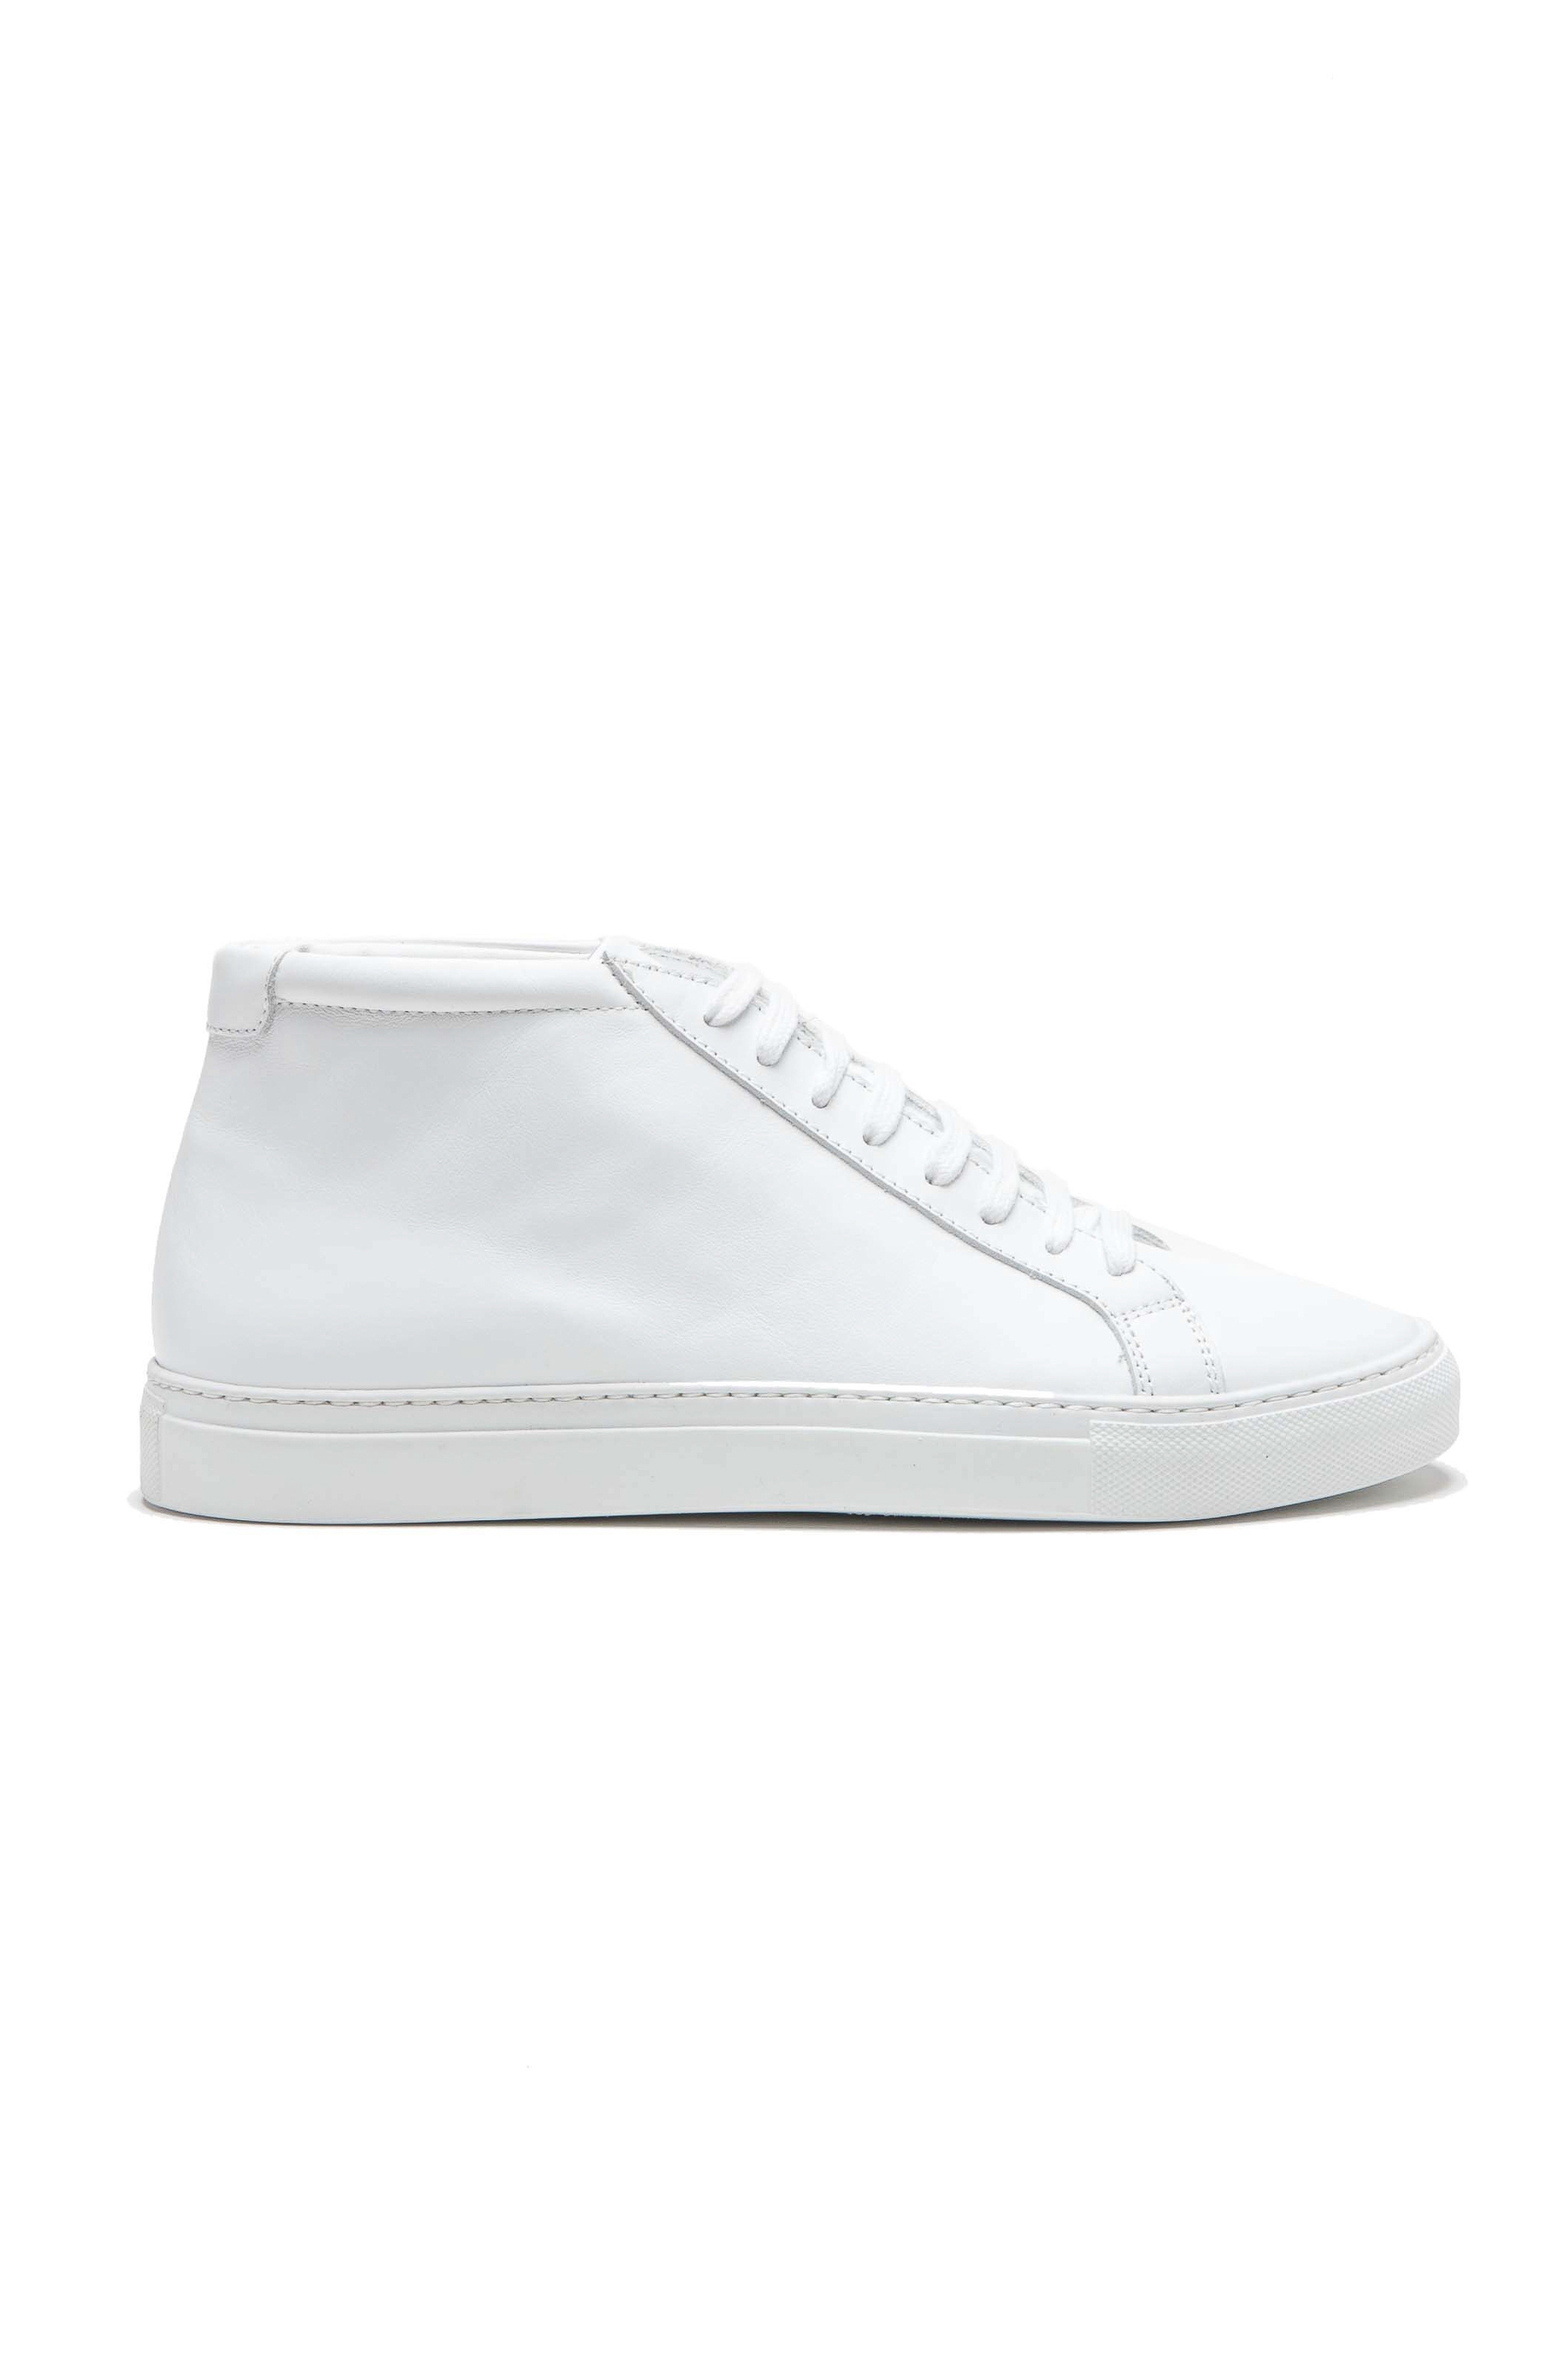 SBU 02970_2020AW Mid top lace up sneakers in white calfskin leather 01